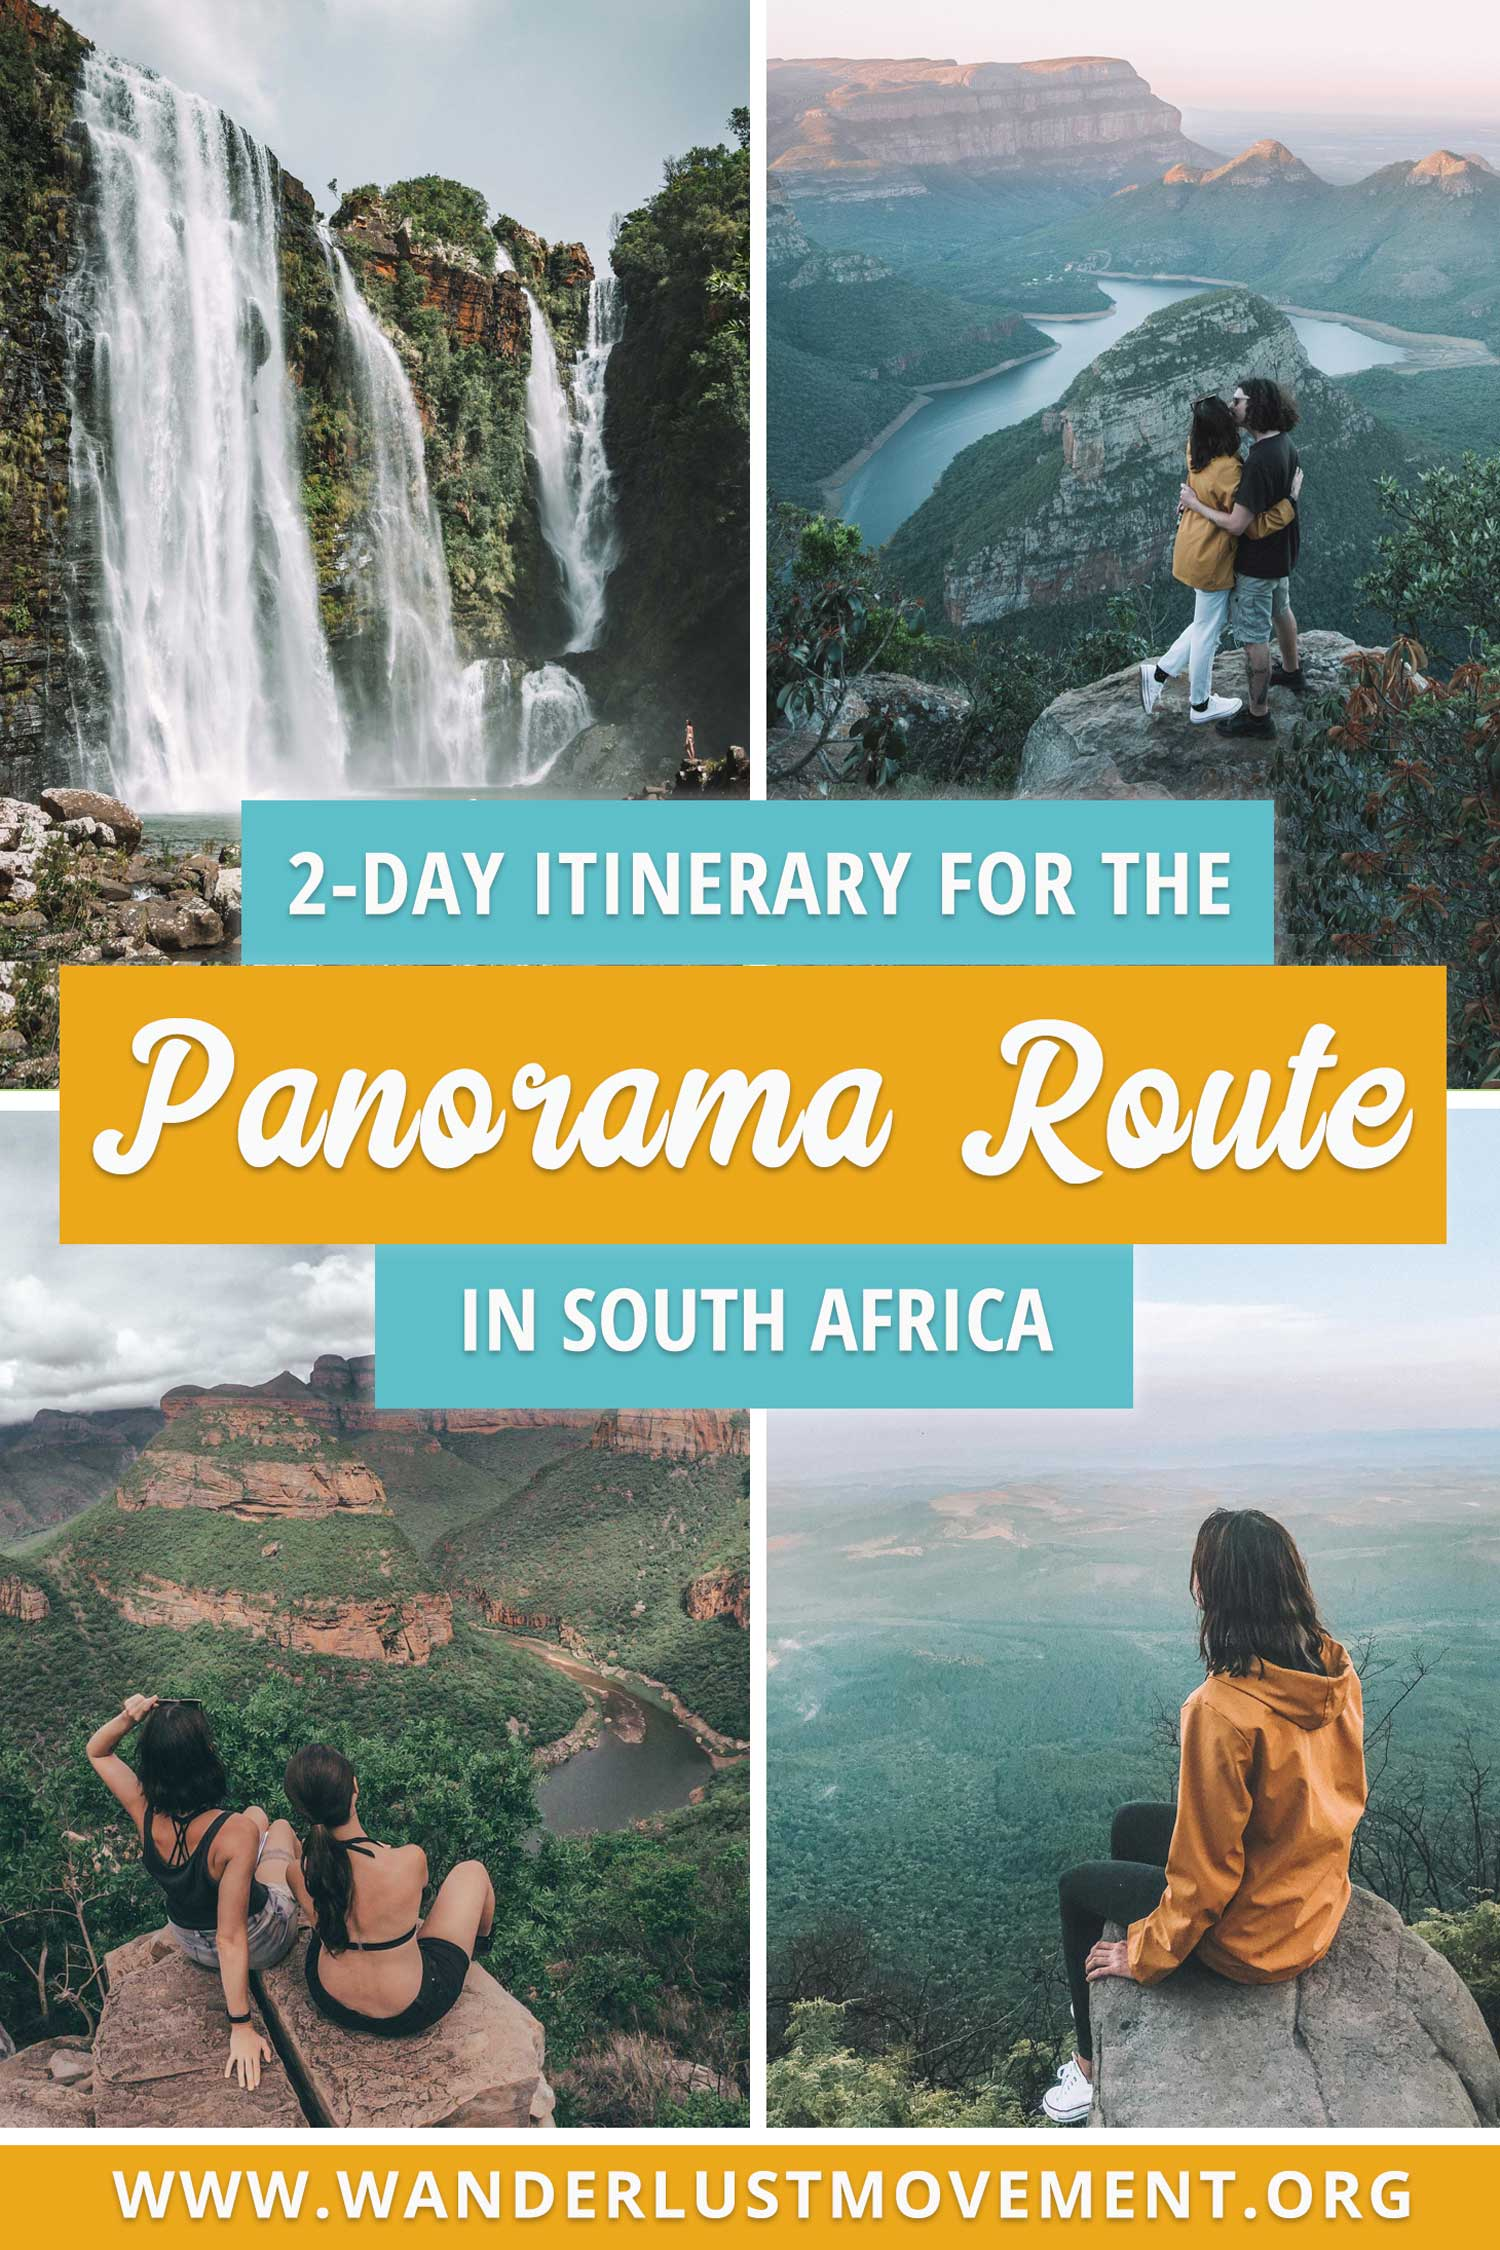 The Panorama Route in South Africa is the most scenic road trip in the country and one of Africa\'s greatest natural wonders. Here\'s my 2-day itinerary for the Panorama Route & everything else you need to know to have an epic road trip through the beautiful Mpumalanga region! | Panorama Route South Africa | Panorama Route Map | South Africa Travel Tips | South Africa Road Trips | South Africa Photography | #southafrica #africa #panoramaroute #roadtrip #traveltips